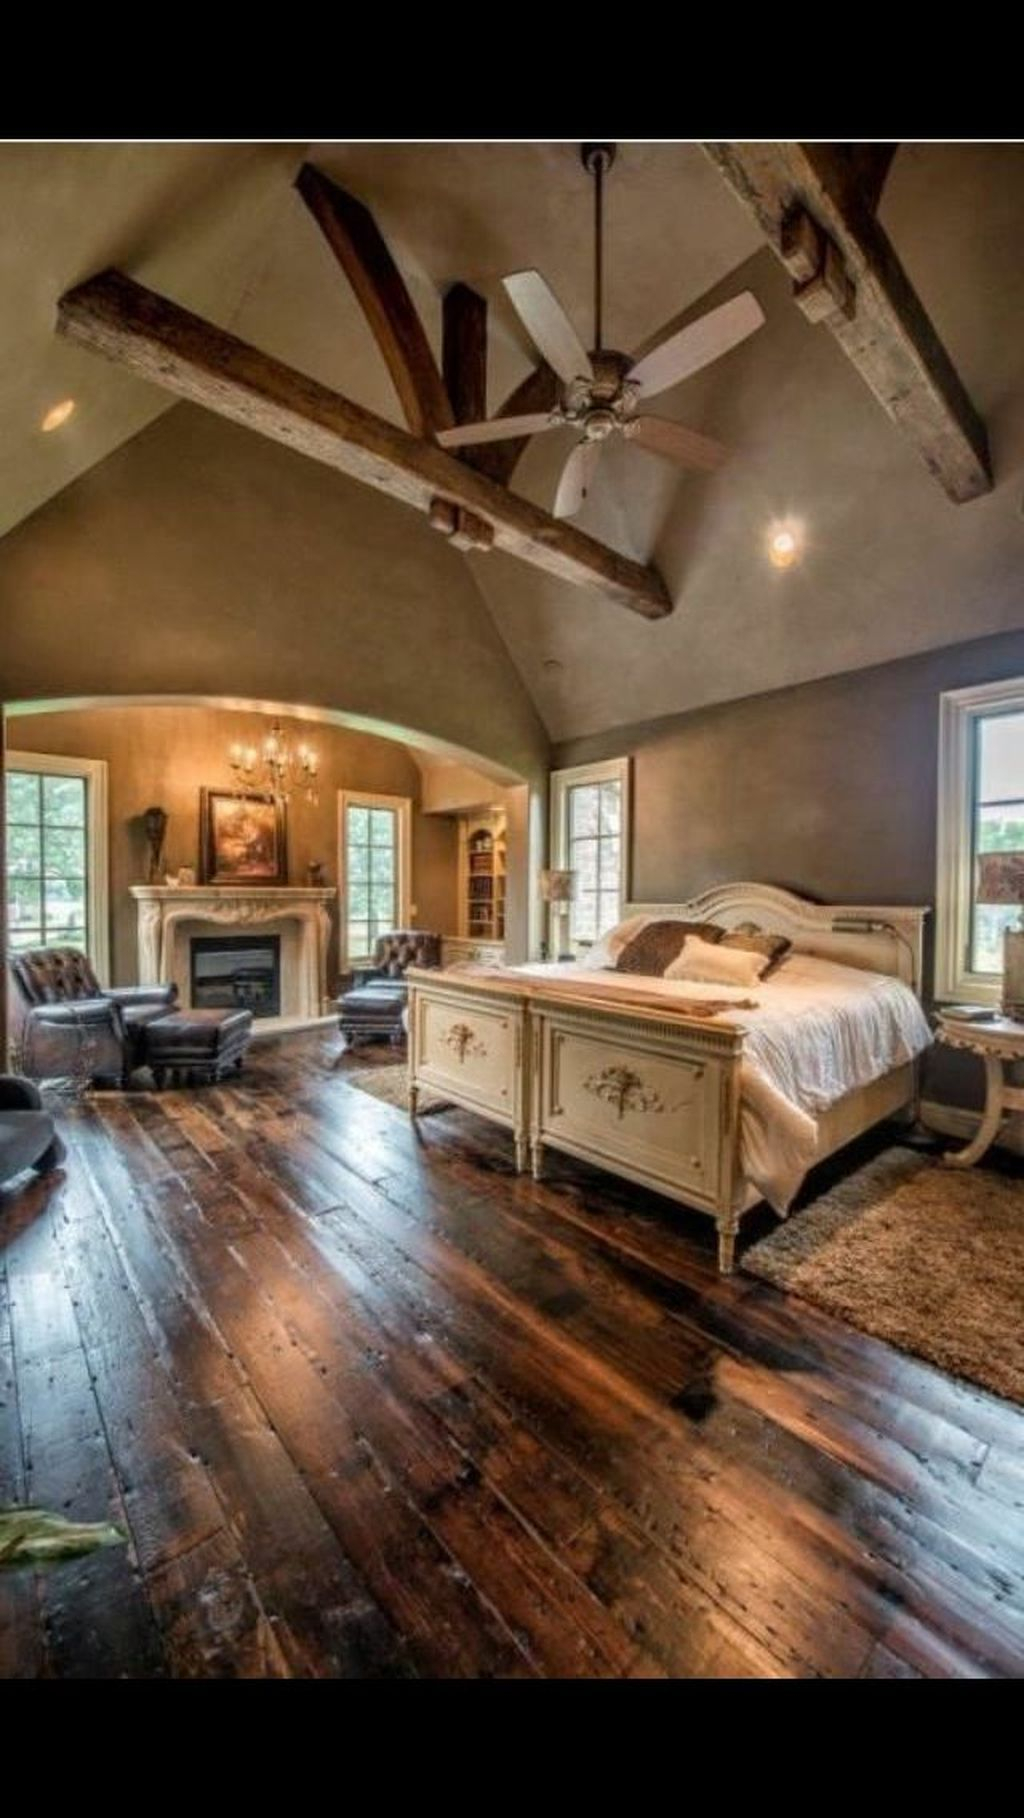 Cool French Country Master Bedroom Design Ideas With Farmhouse Style 17